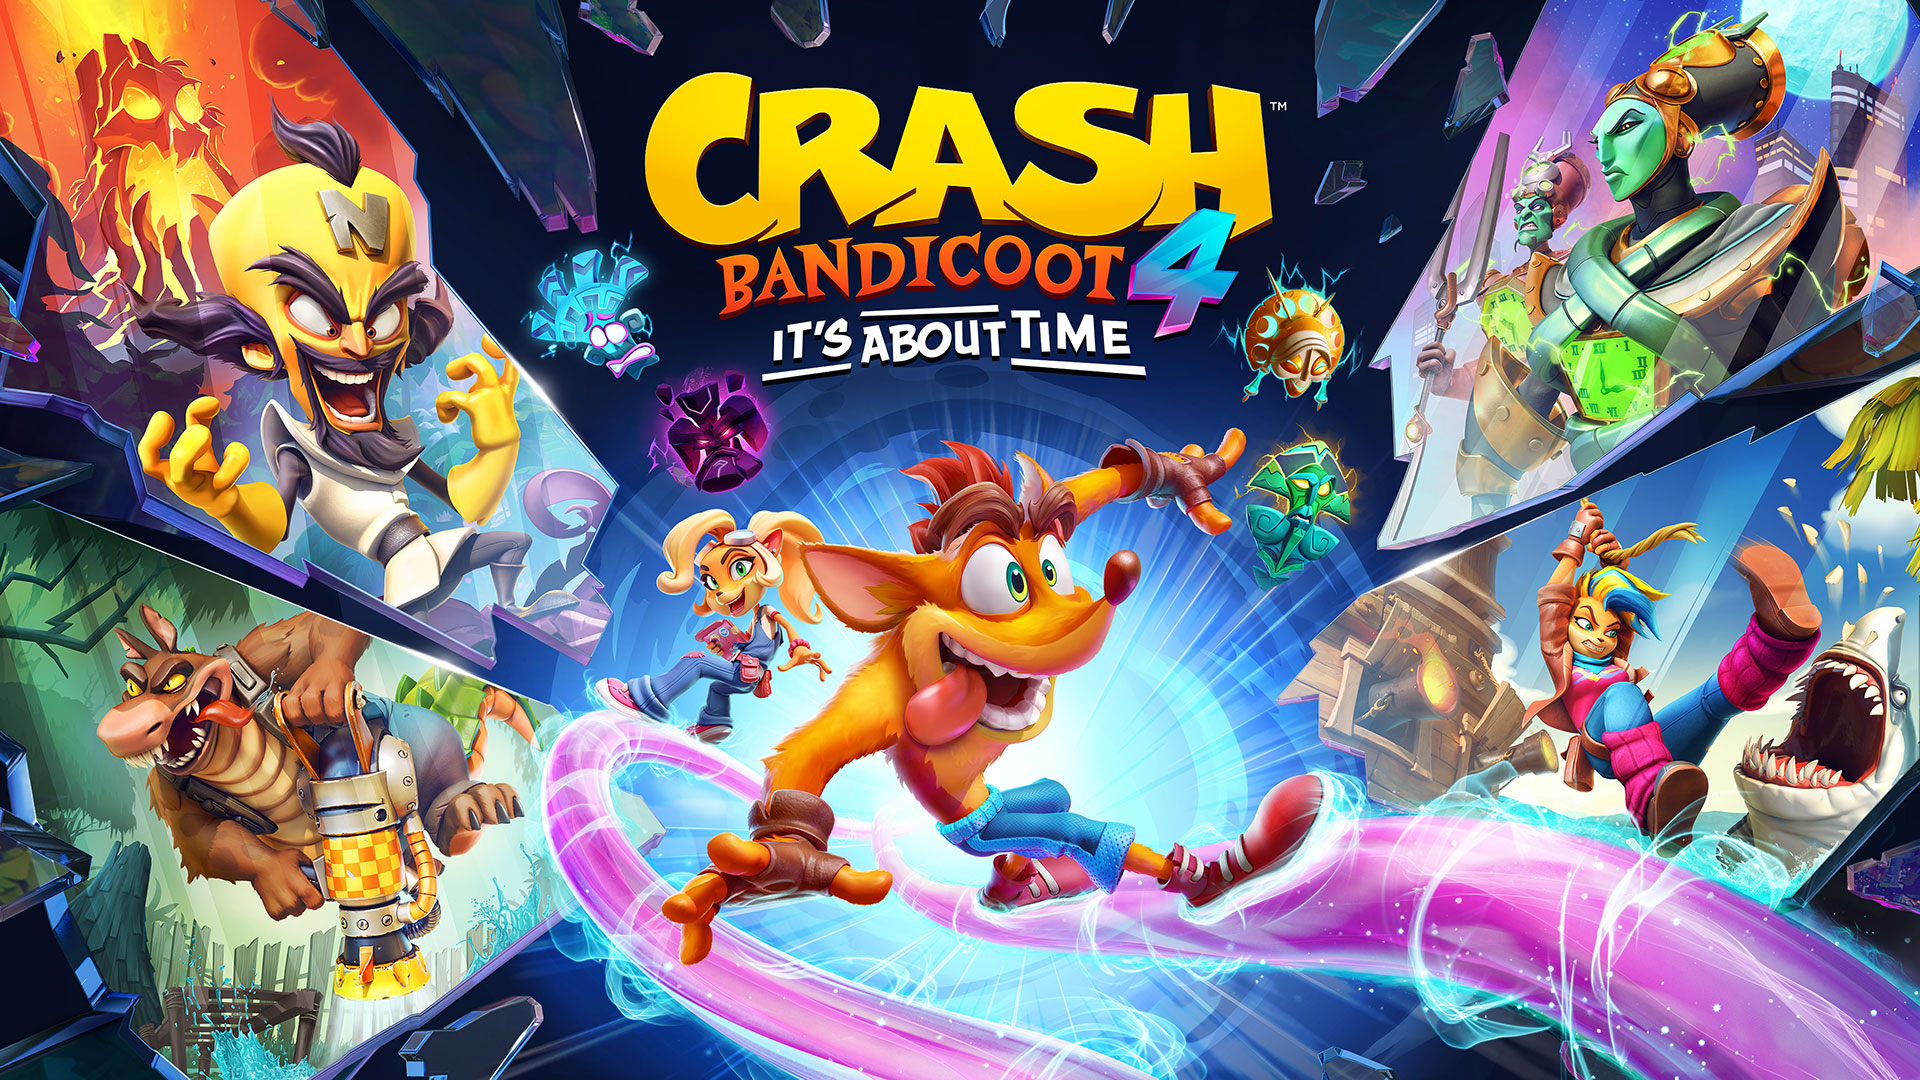 Crash Bandicoot 4 It S About Time Available Now Save The Multiverse In This New Original Adventure